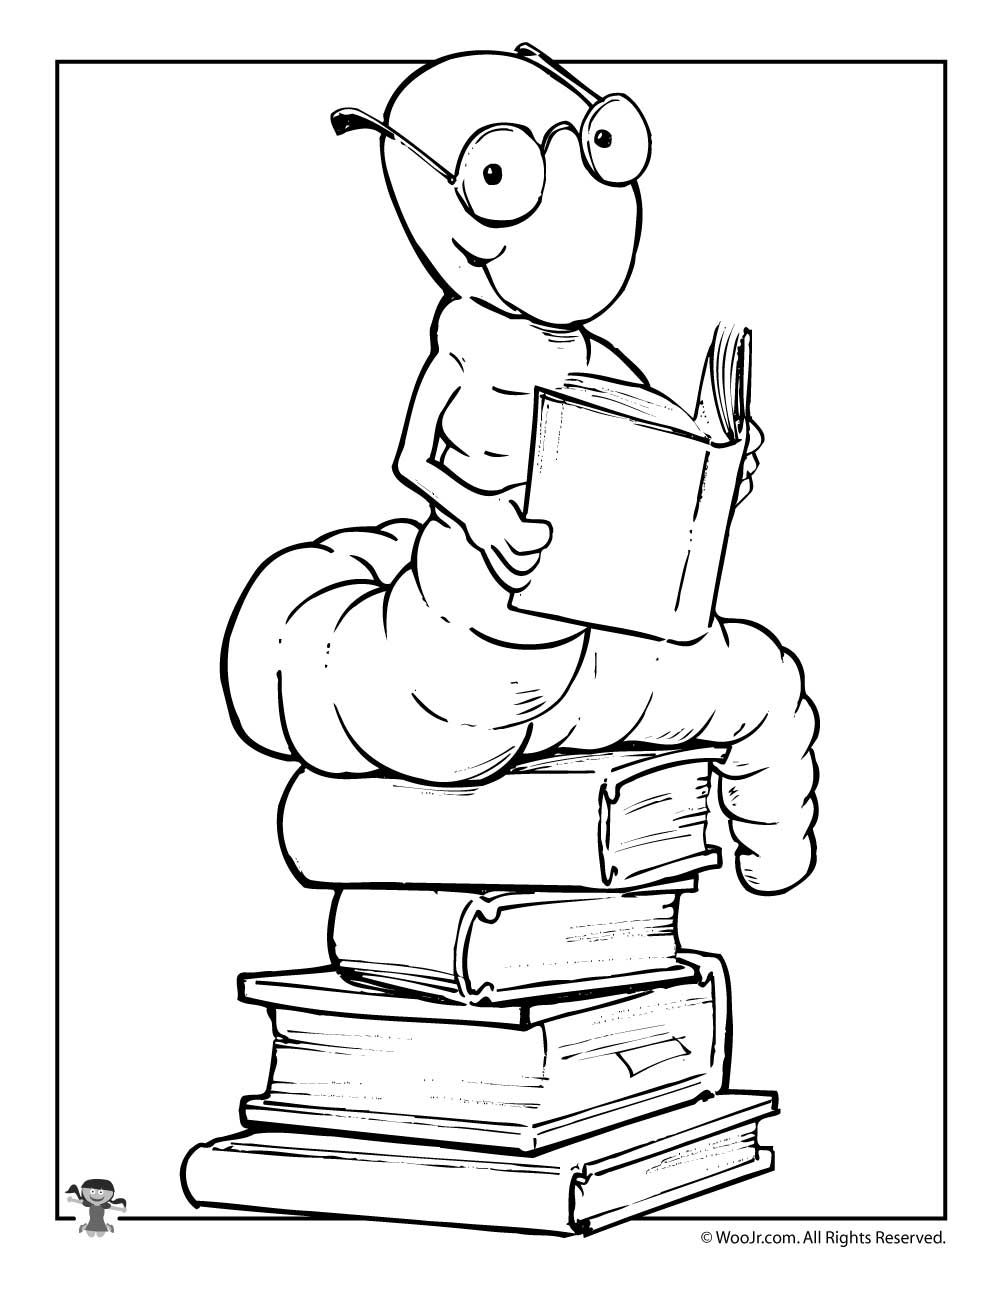 Printable Library Activities Coloring Pages Word Puzzles Hidden Pictures Woo Jr Kids Activities Coloring Pages Cute Coloring Pages Pattern Coloring Pages